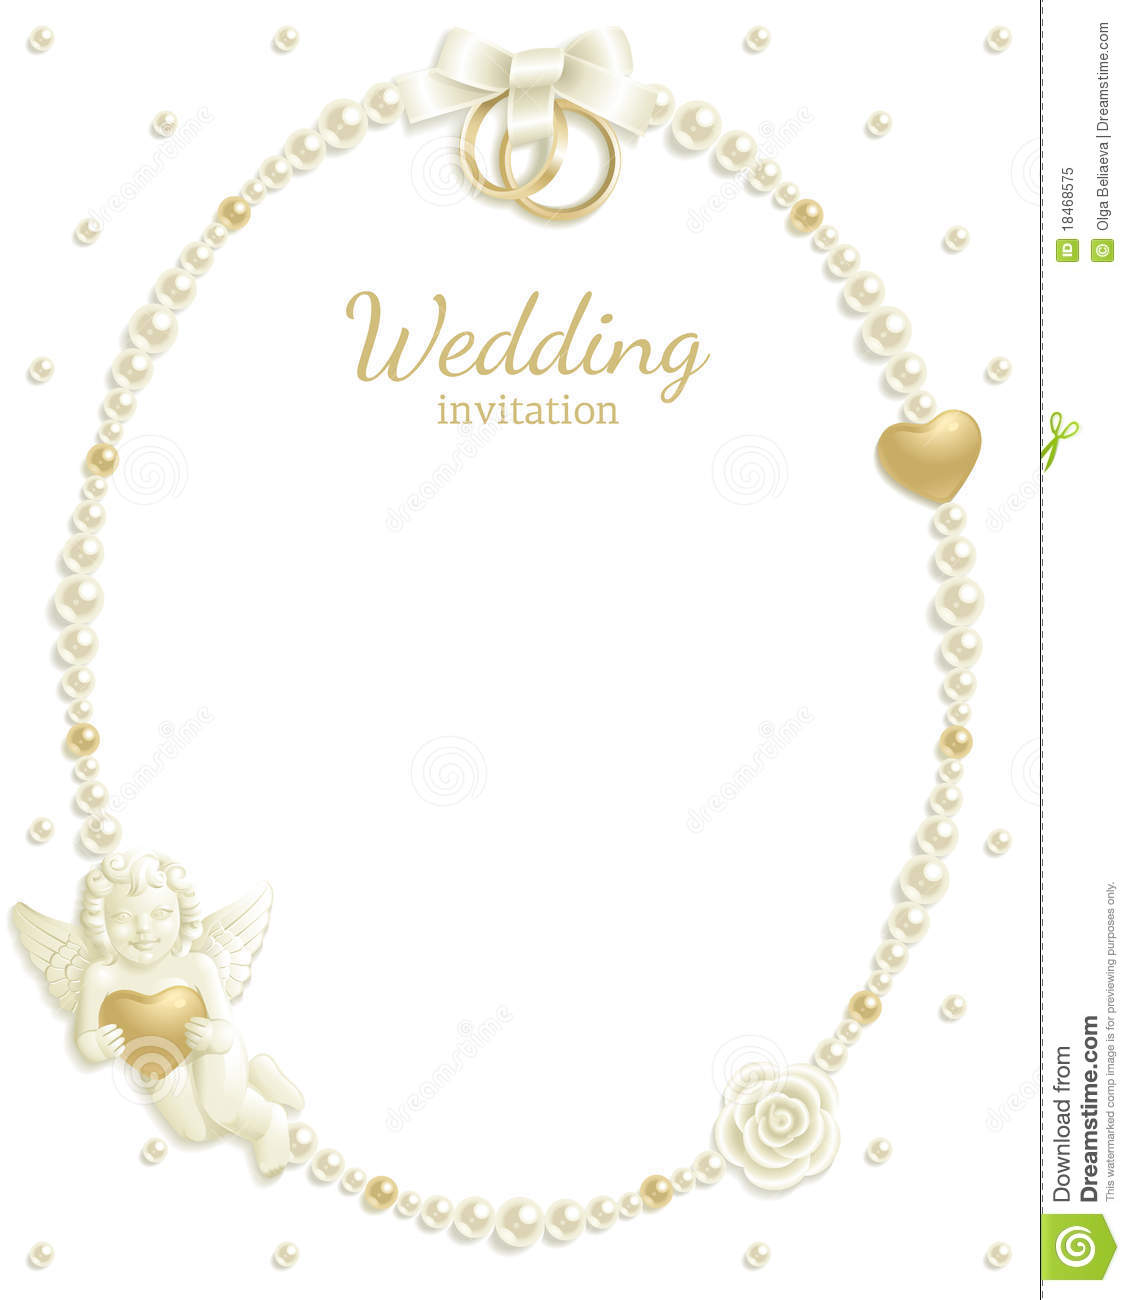 Wedding background with jewels composing a frame for your text.